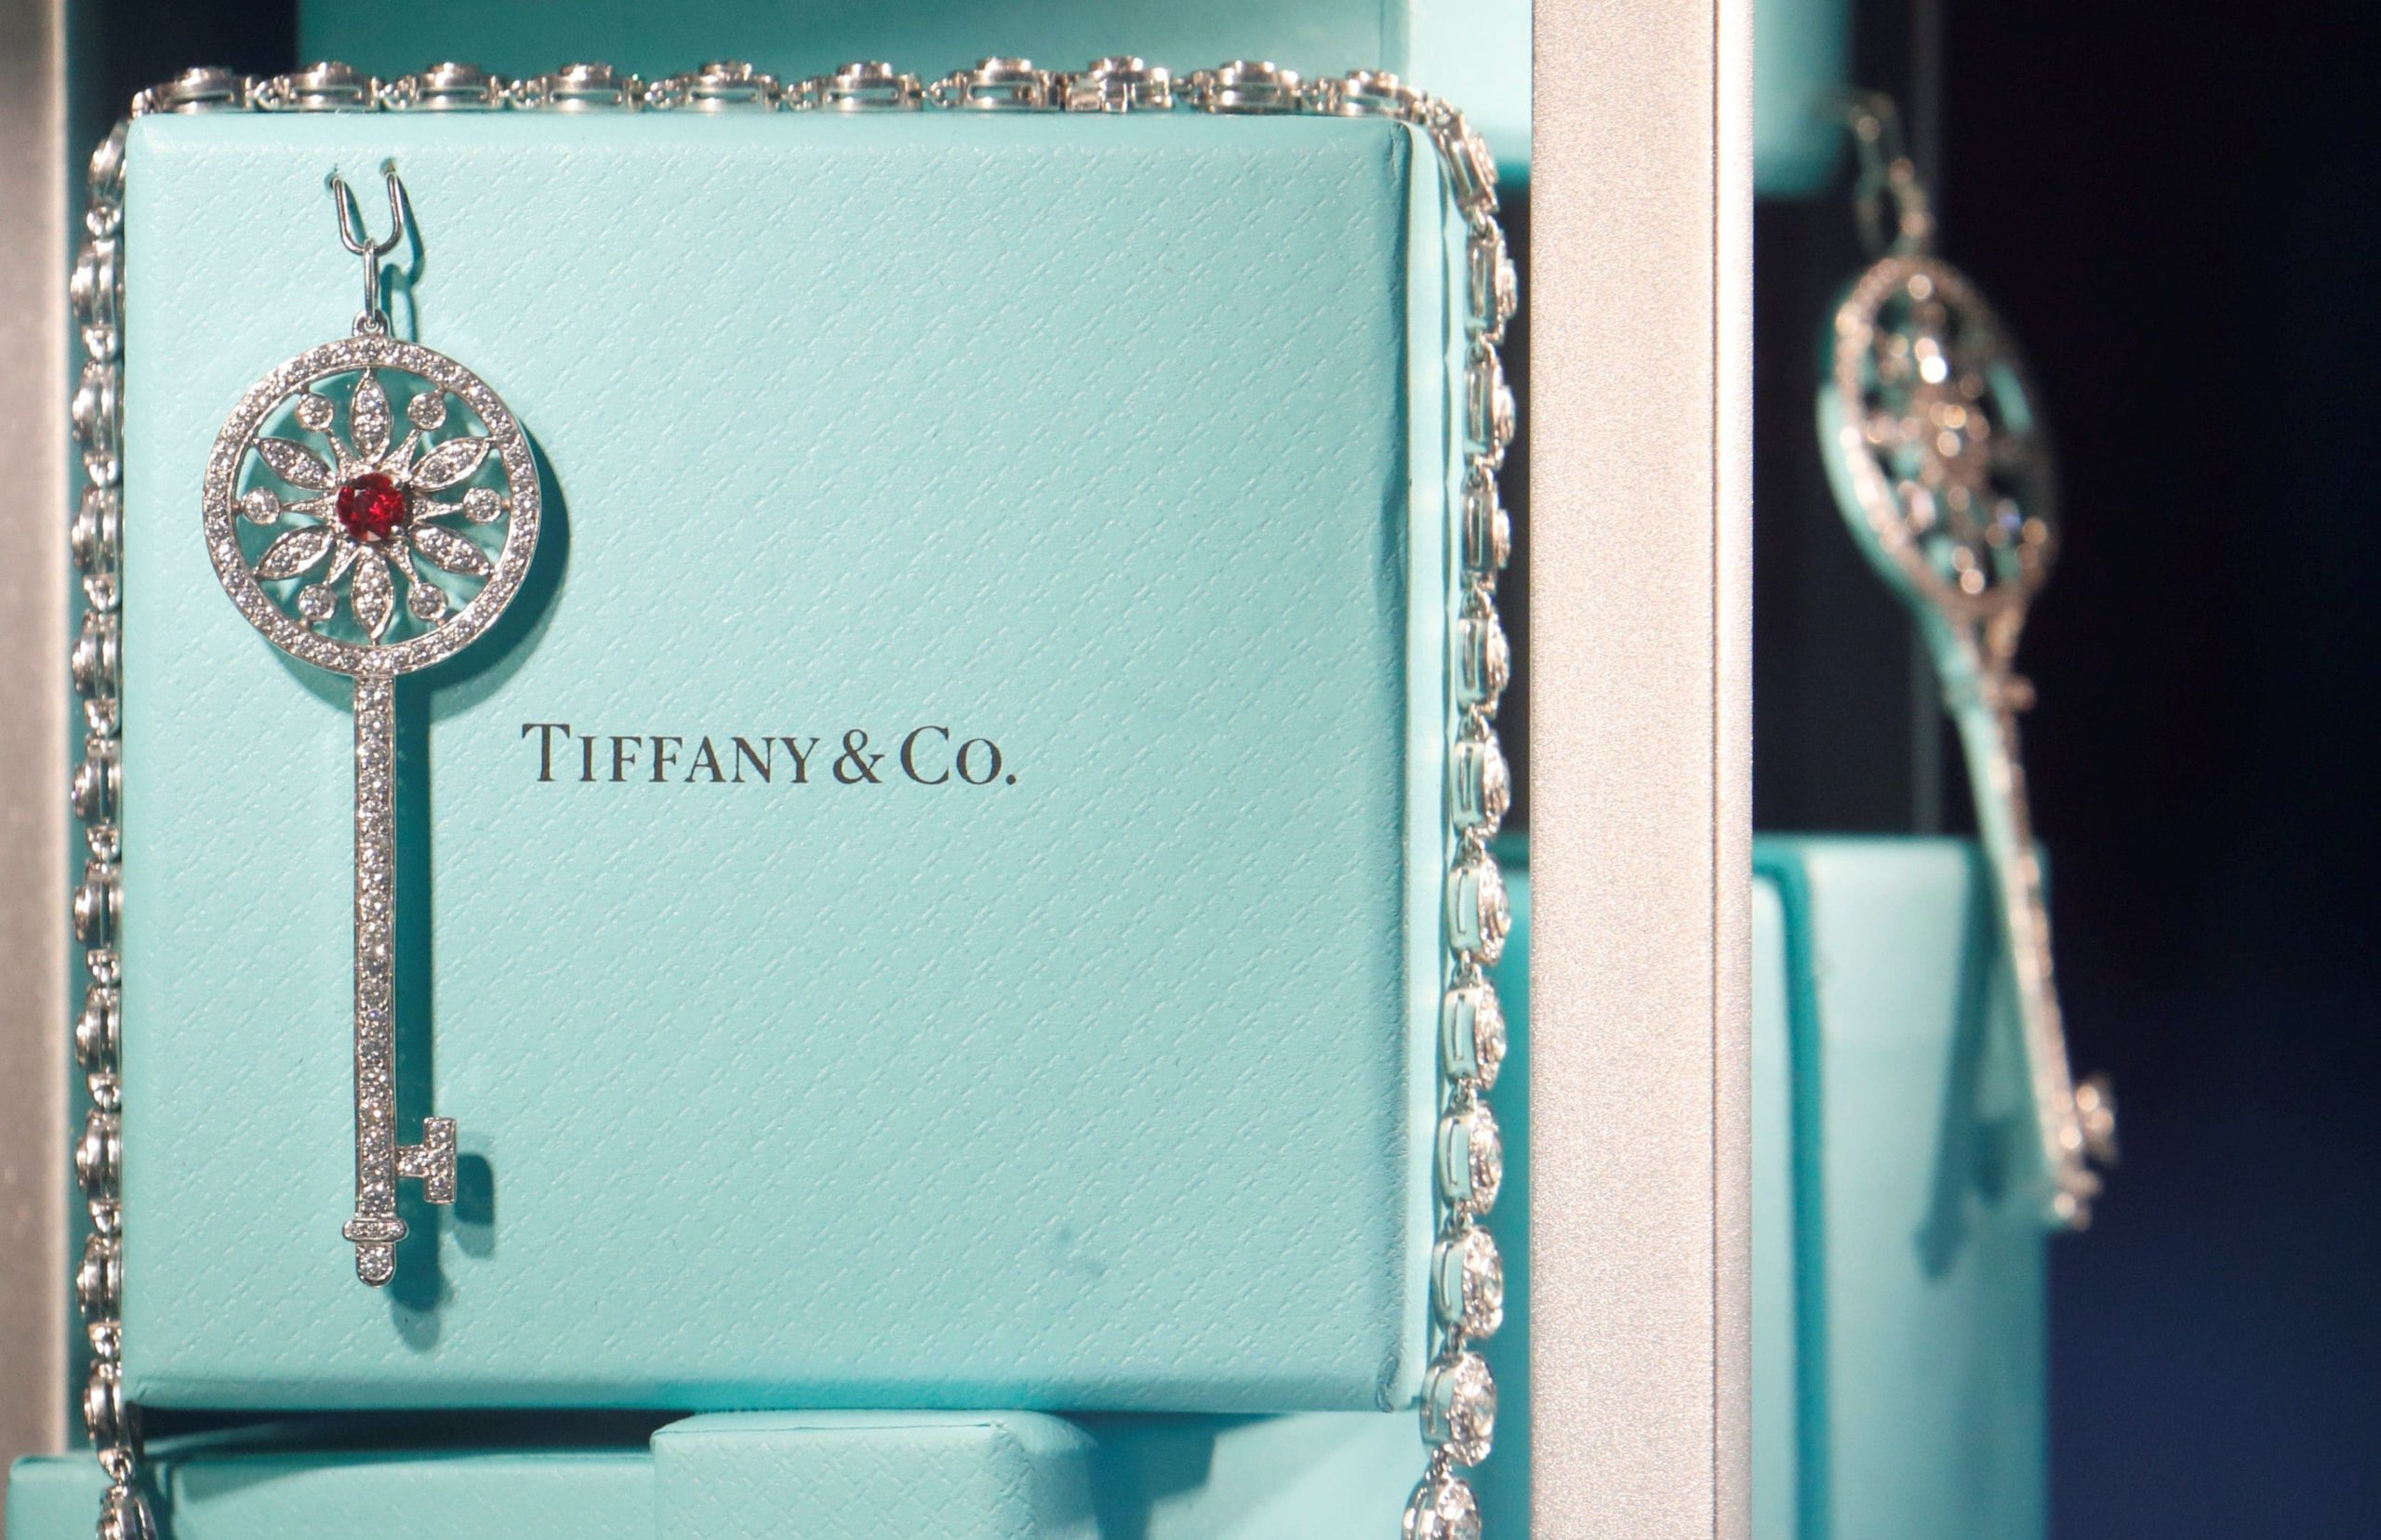 LVMH's Deal With Jeweler Giant Tiffany & Co. Deal Is About To Close